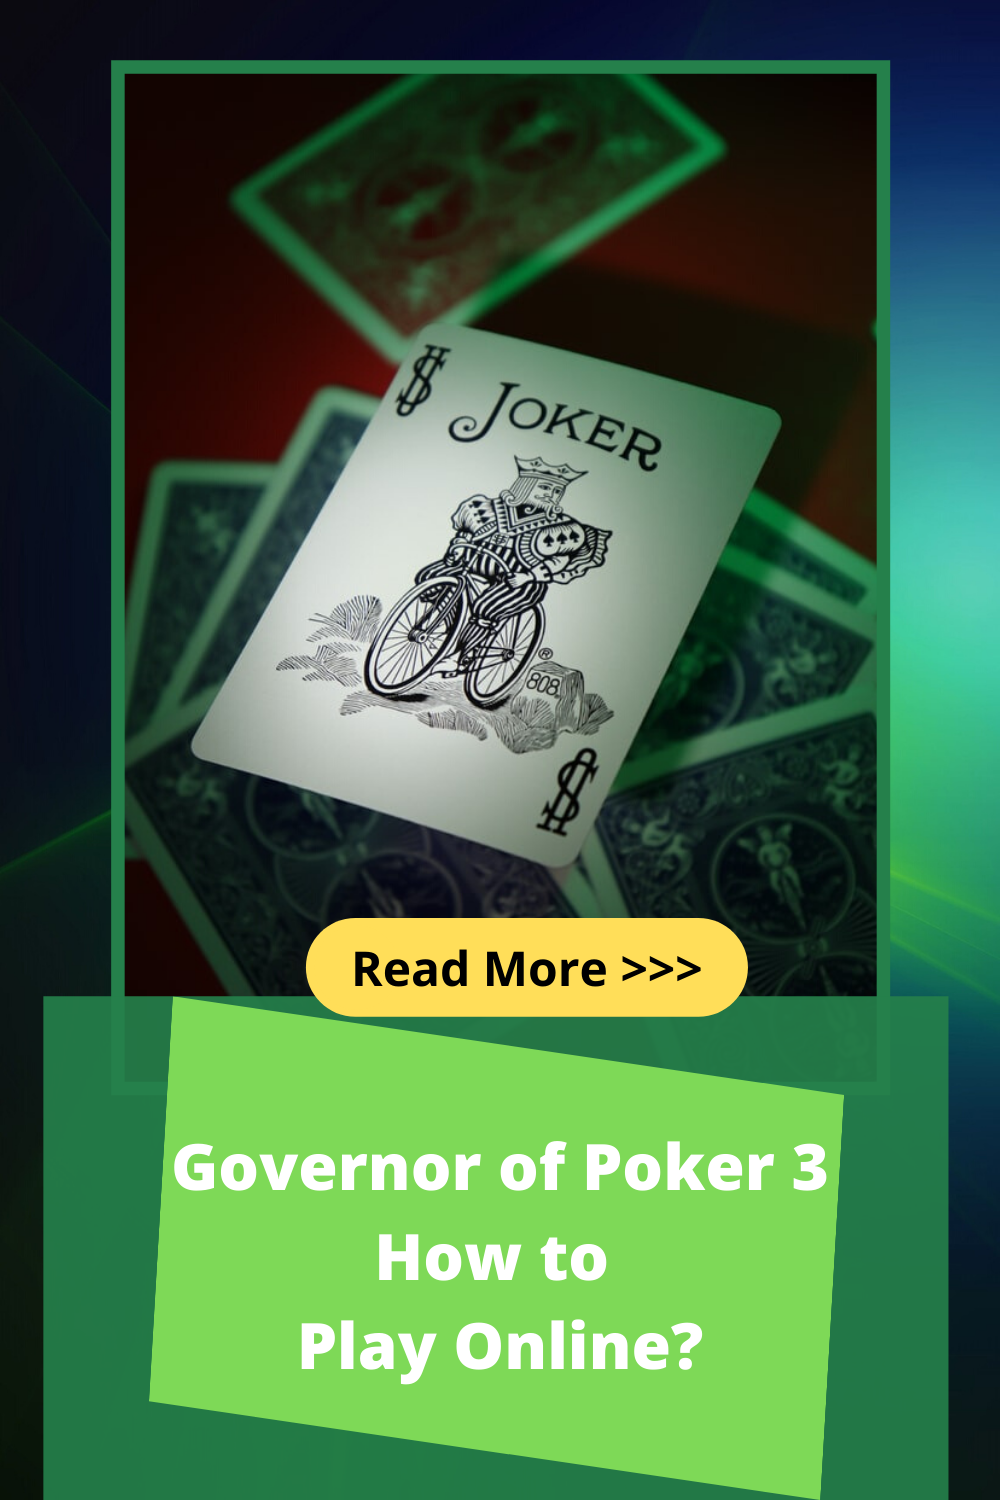 Pin on Pokers News Online WSOP Tournaments